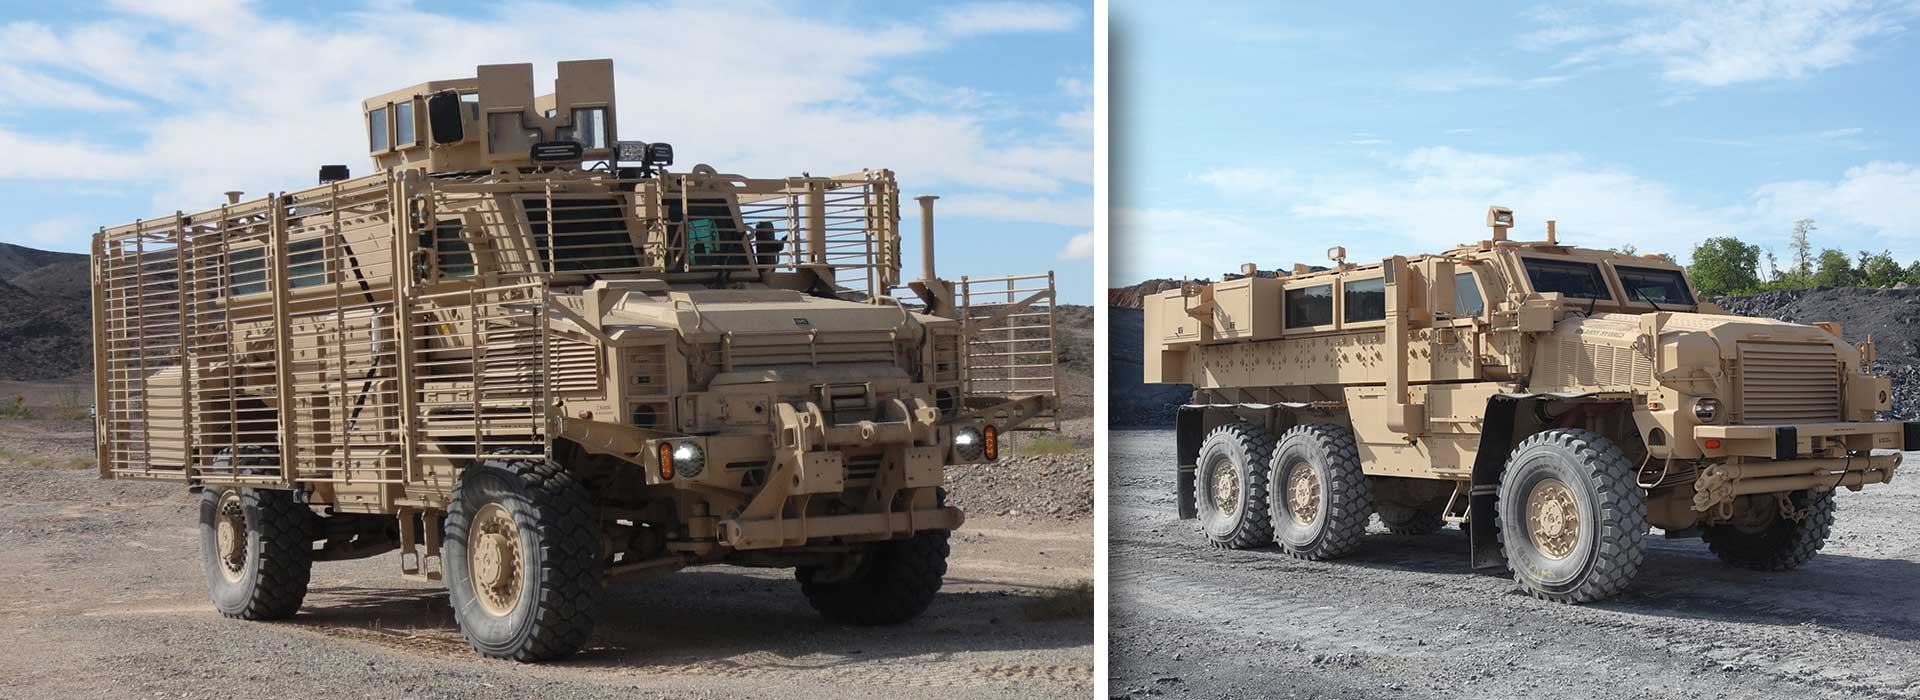 Mine Protection Vehicle Family (MPVF), Mine Clearing Vehicle (MCV), Explosive Hazard Pre-Detonation (EHP)